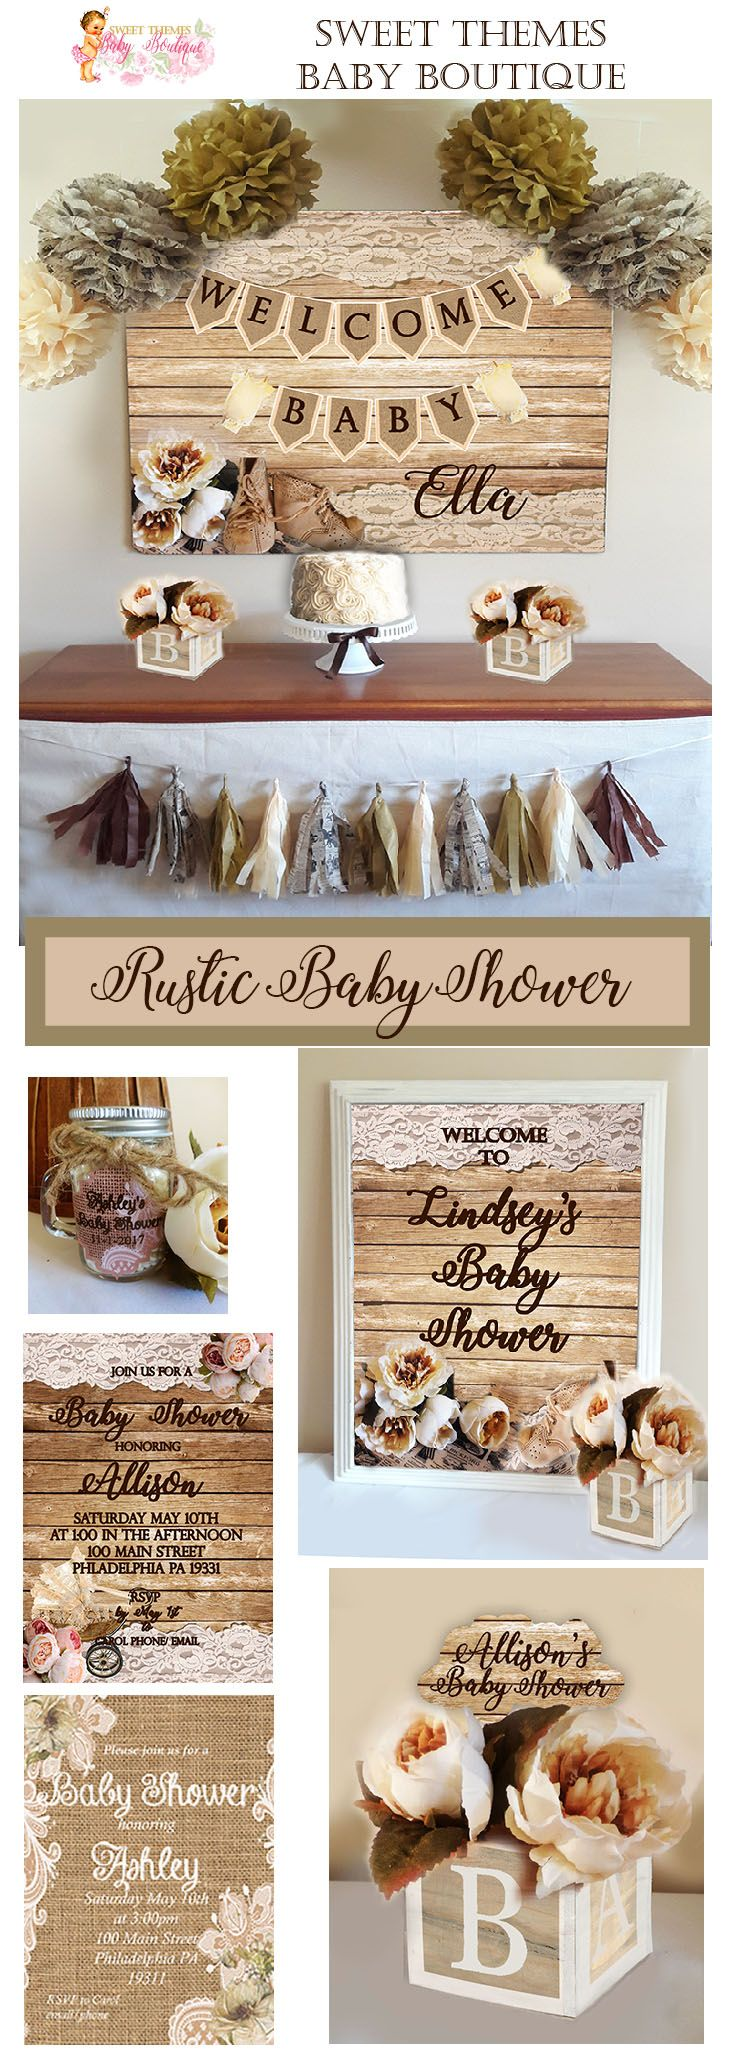 A rustic baby shower theme that is perfect for a baby boy or girl baby shower